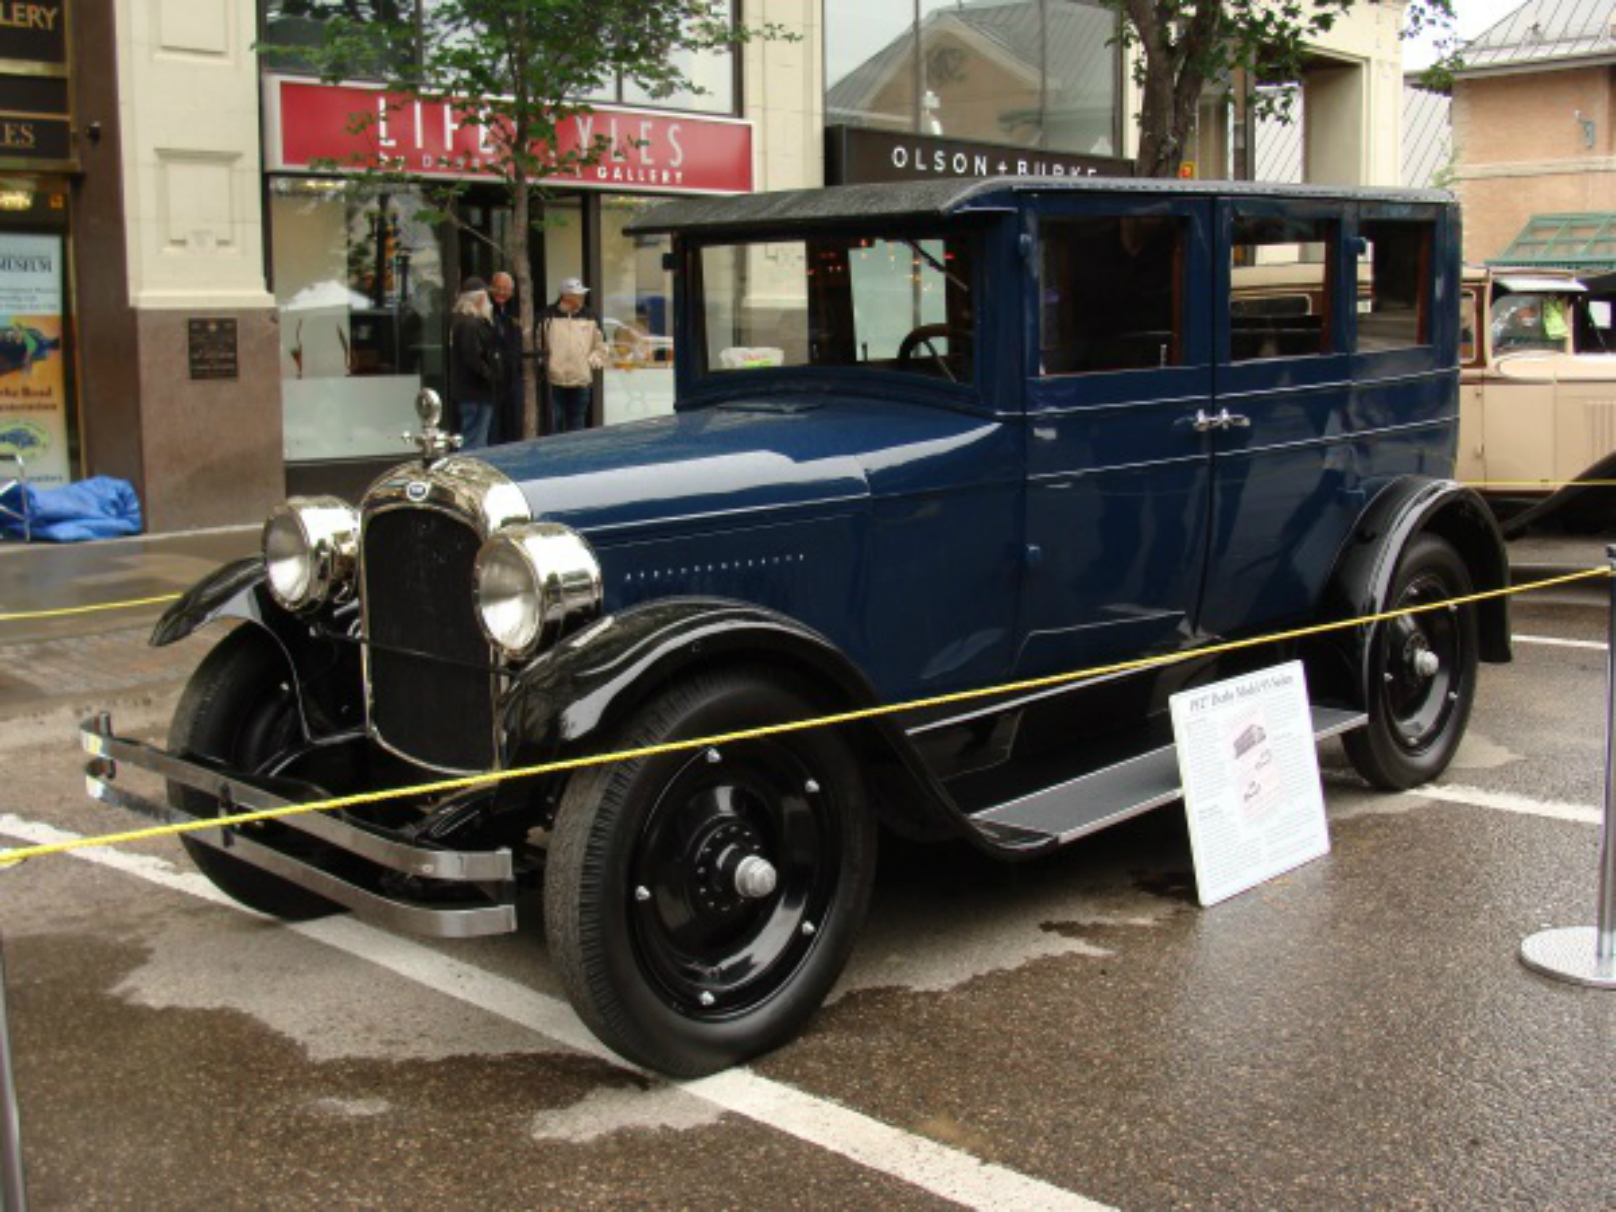 Made in Canada: 150 years of Canadian auto manufacturing | OurWindsor.ca